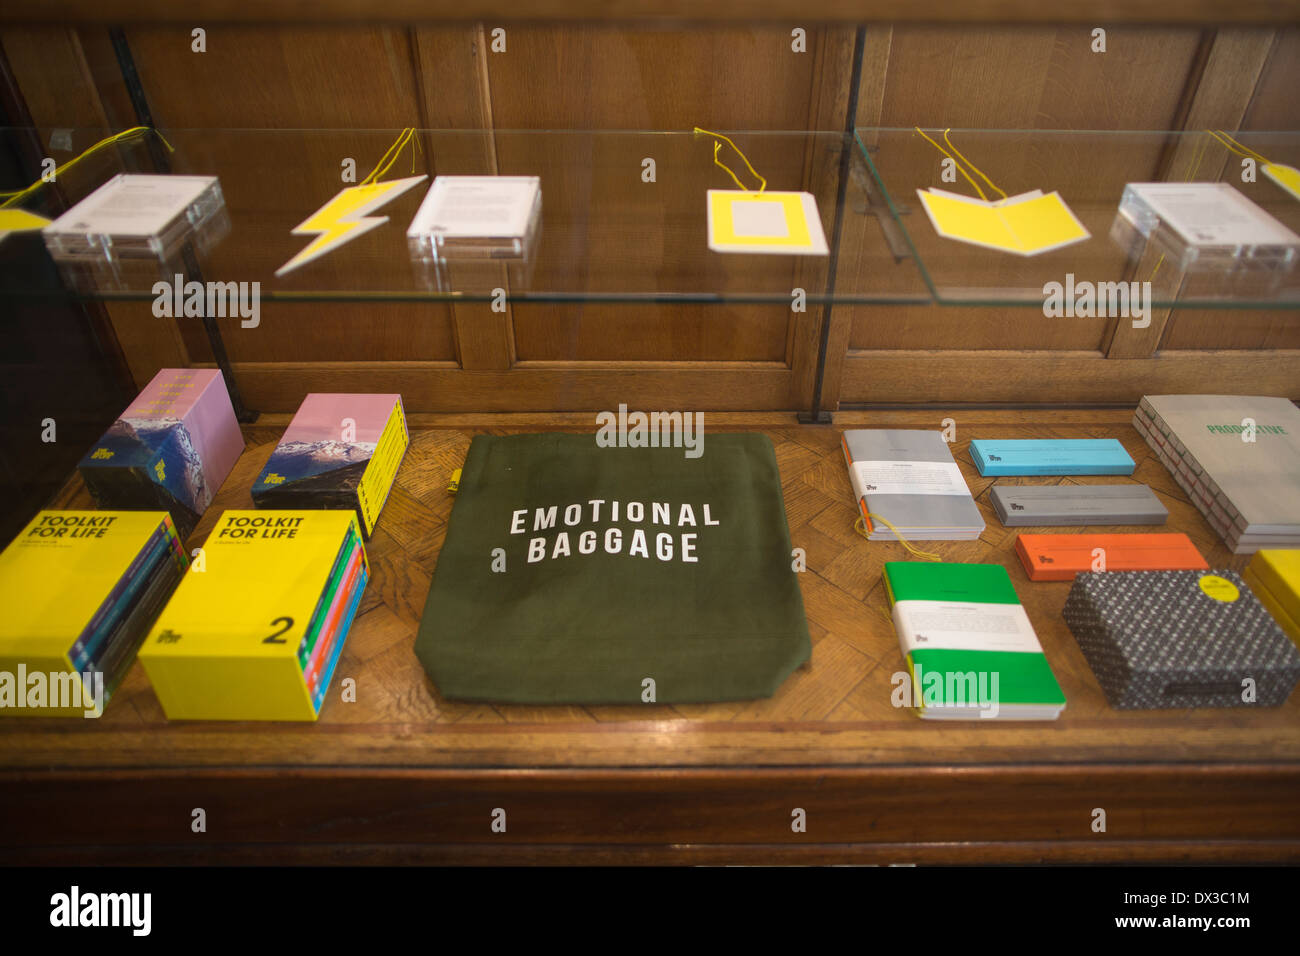 The School of Life headquarters, therapy classes and assistance in the quest for a fulfilled life, London, England, UK - Stock Image